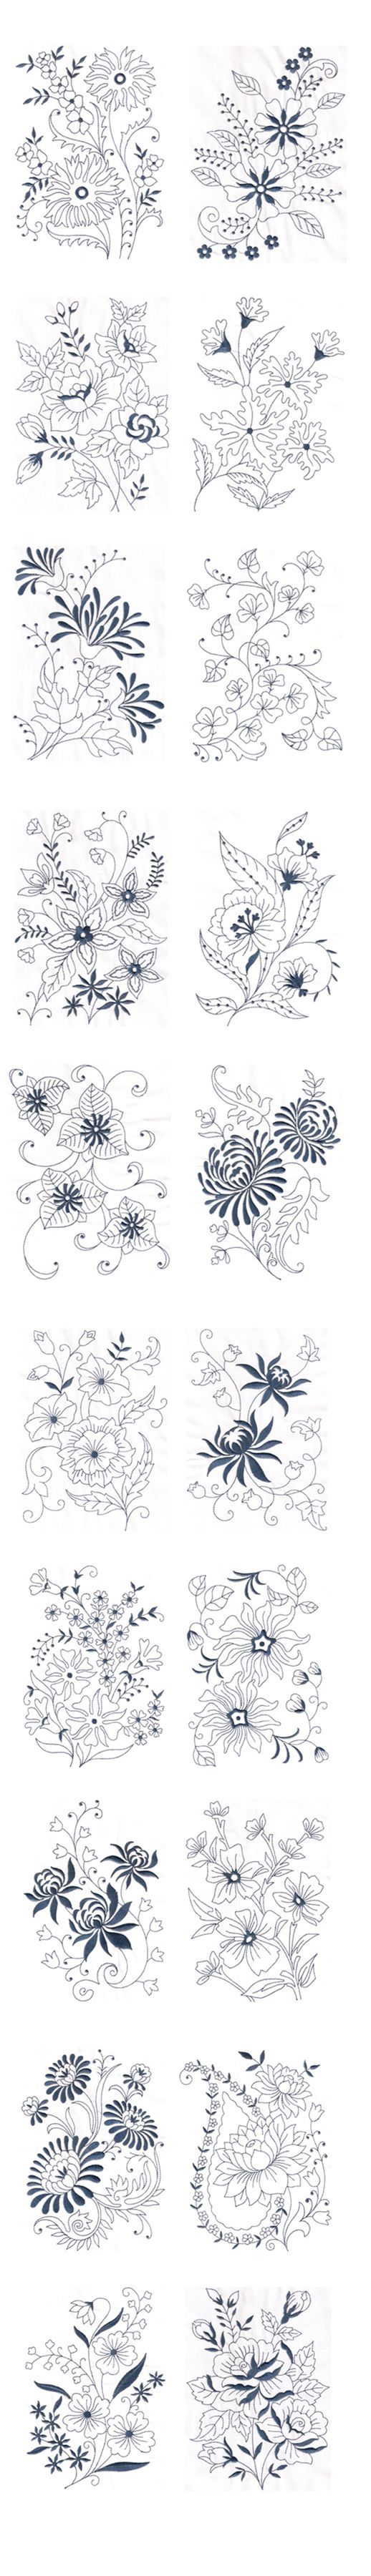 Amazing emotions vintage florals machine embroidery designs